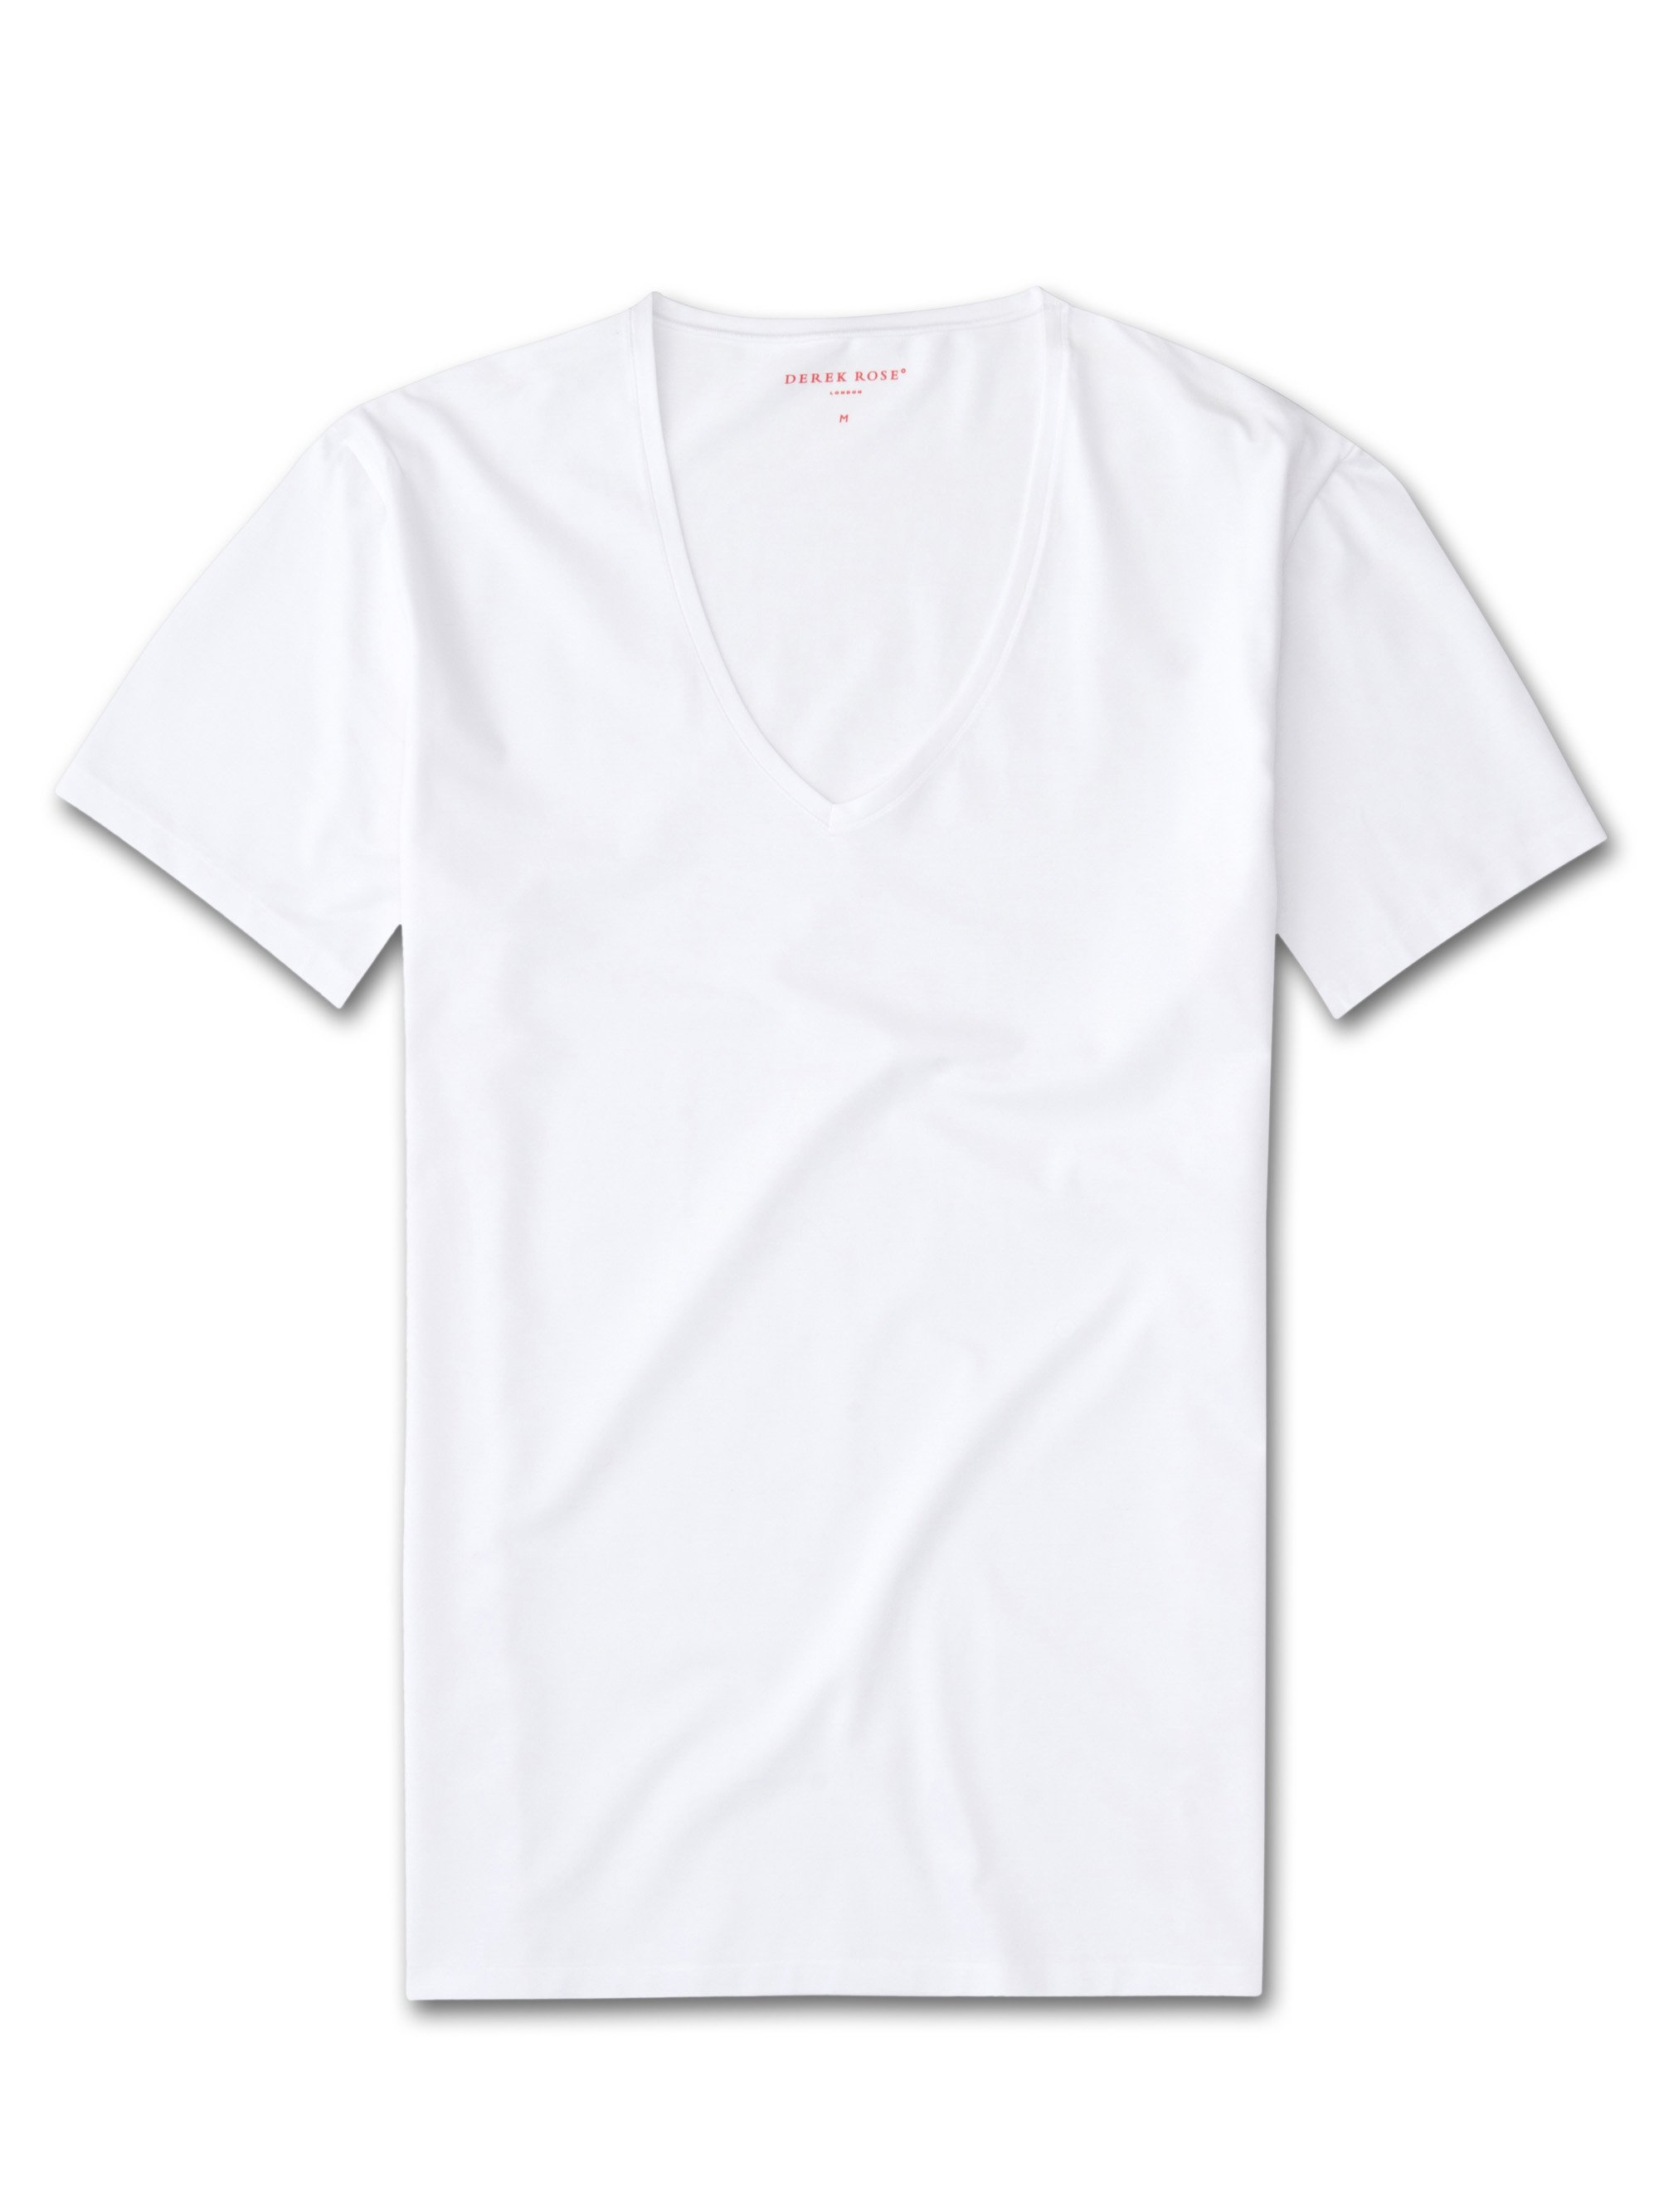 Men's Underwear V-Neck T-Shirt Jack Pima Cotton Stretch White